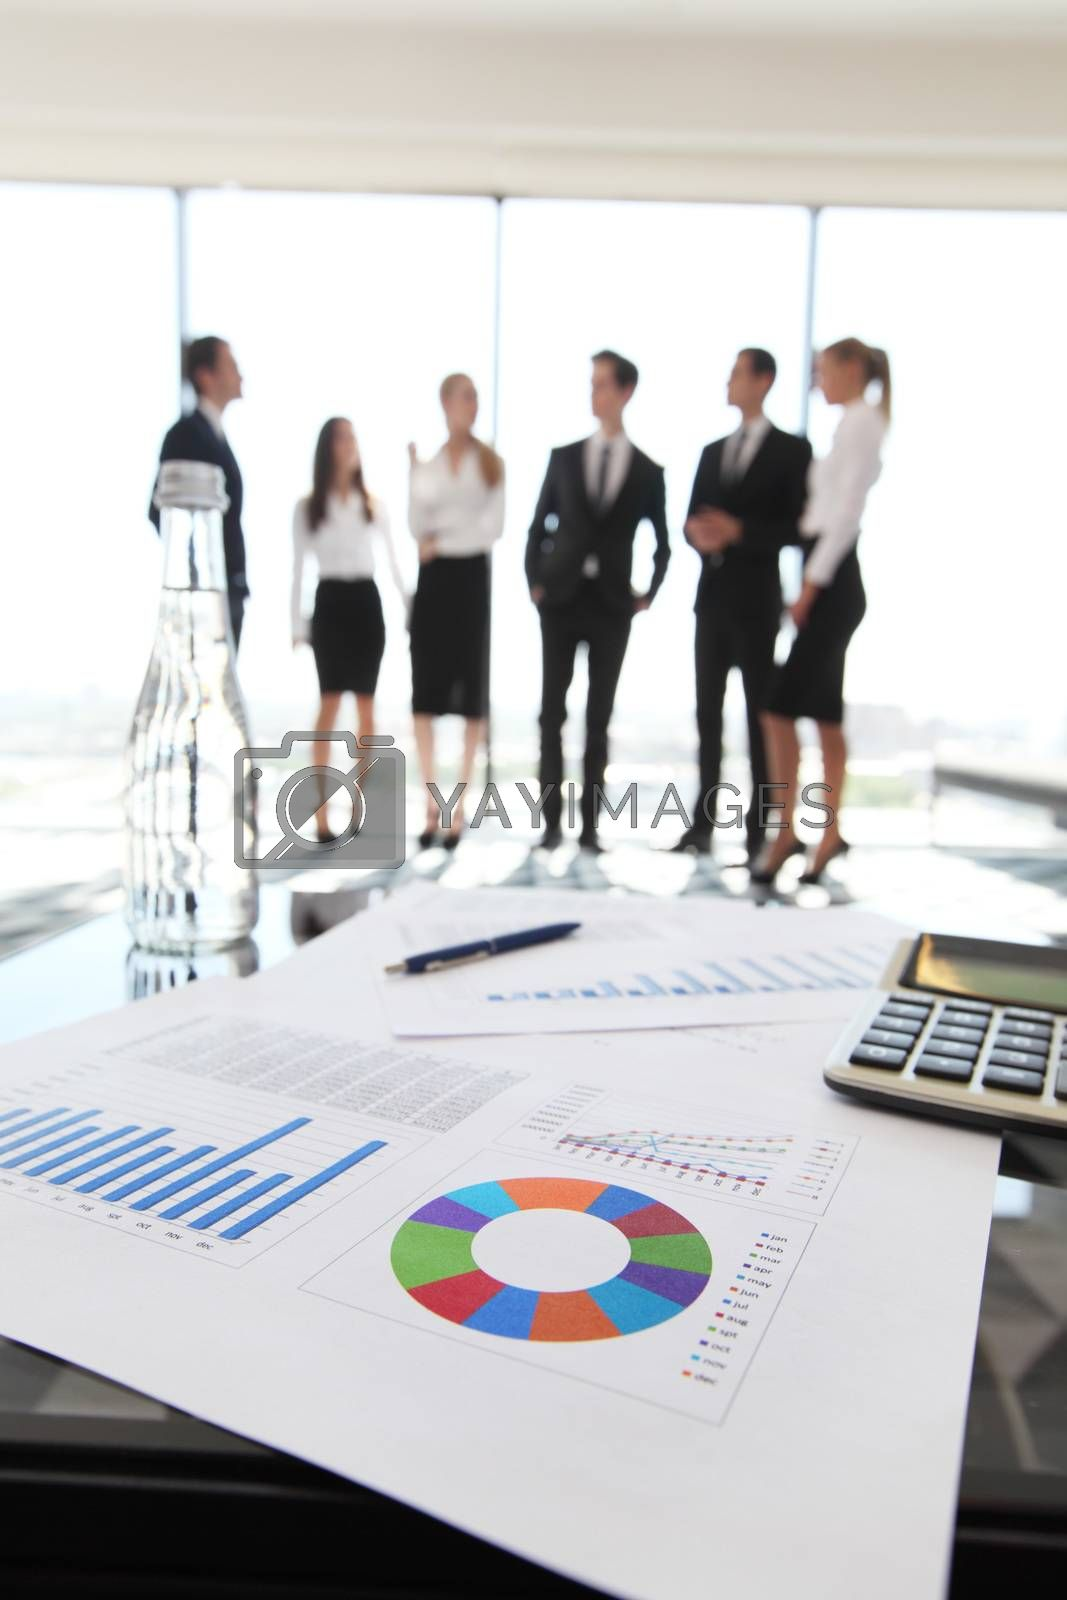 Financial data and business people by ALotOfPeople